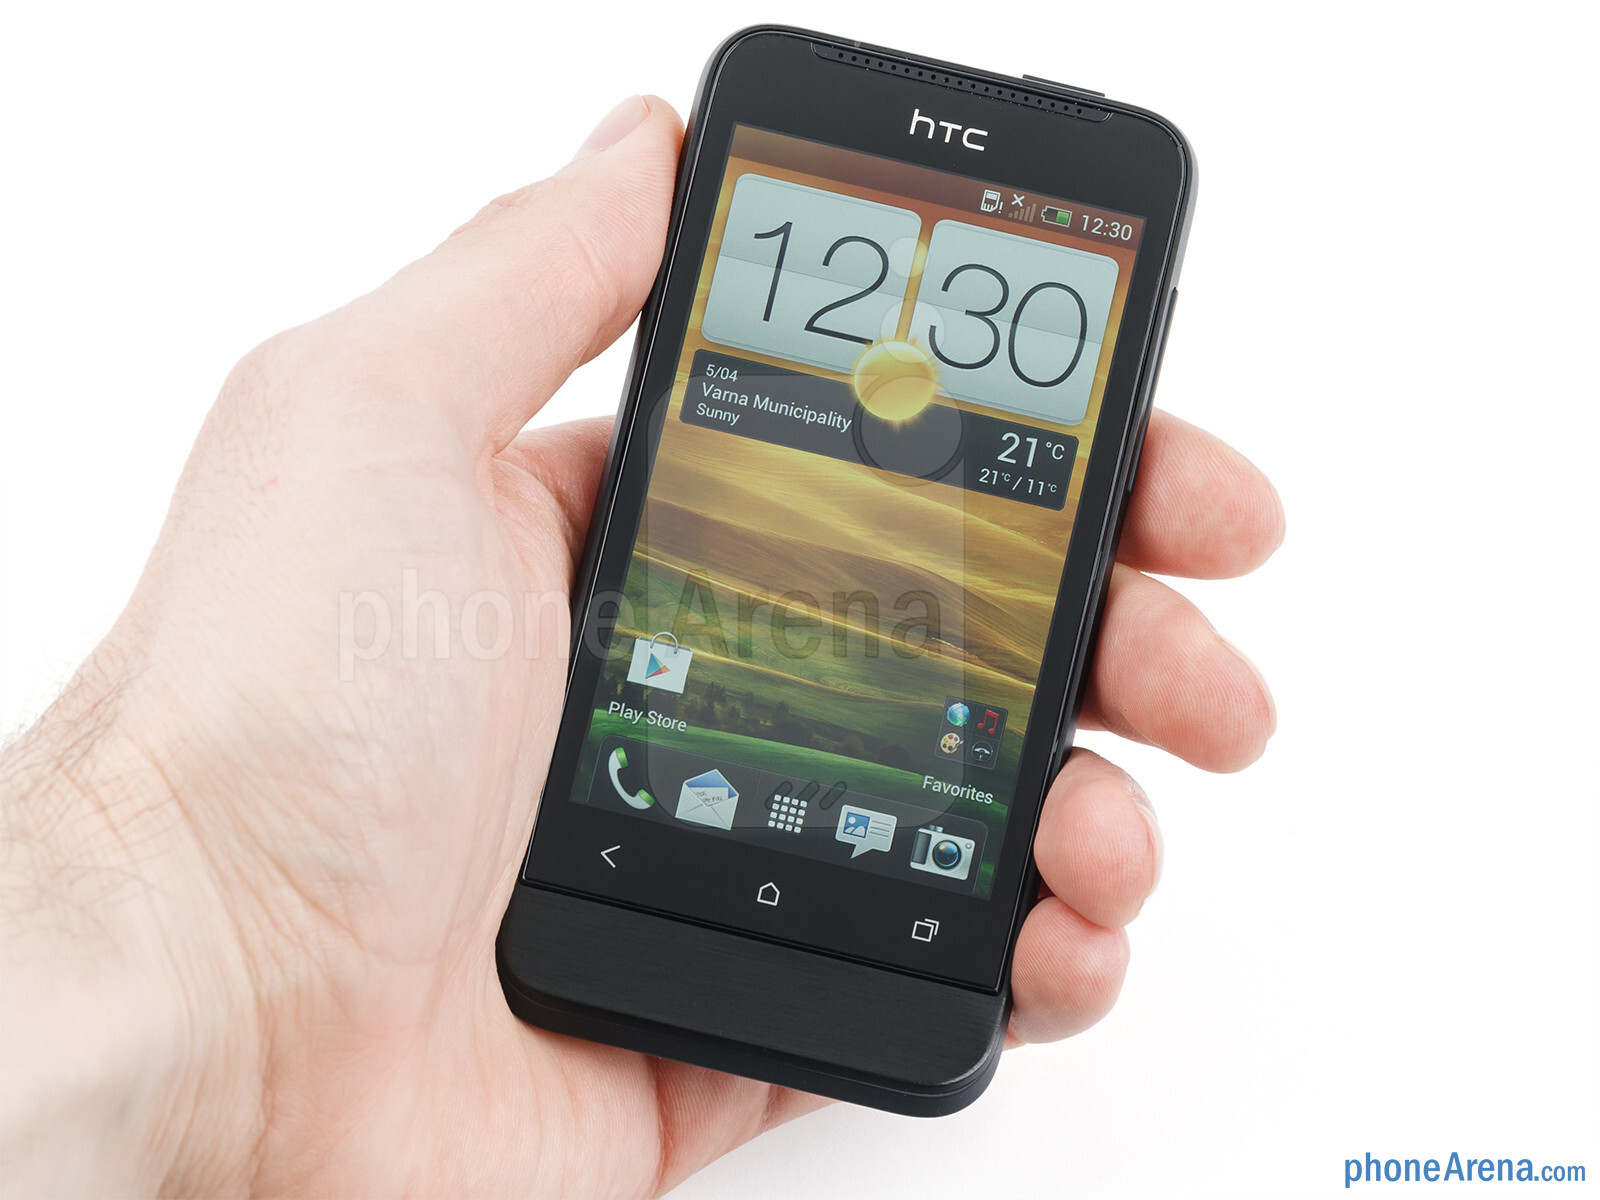 htc one v review rh phonearena com htc one v manual guide htc one v manual guide pdf